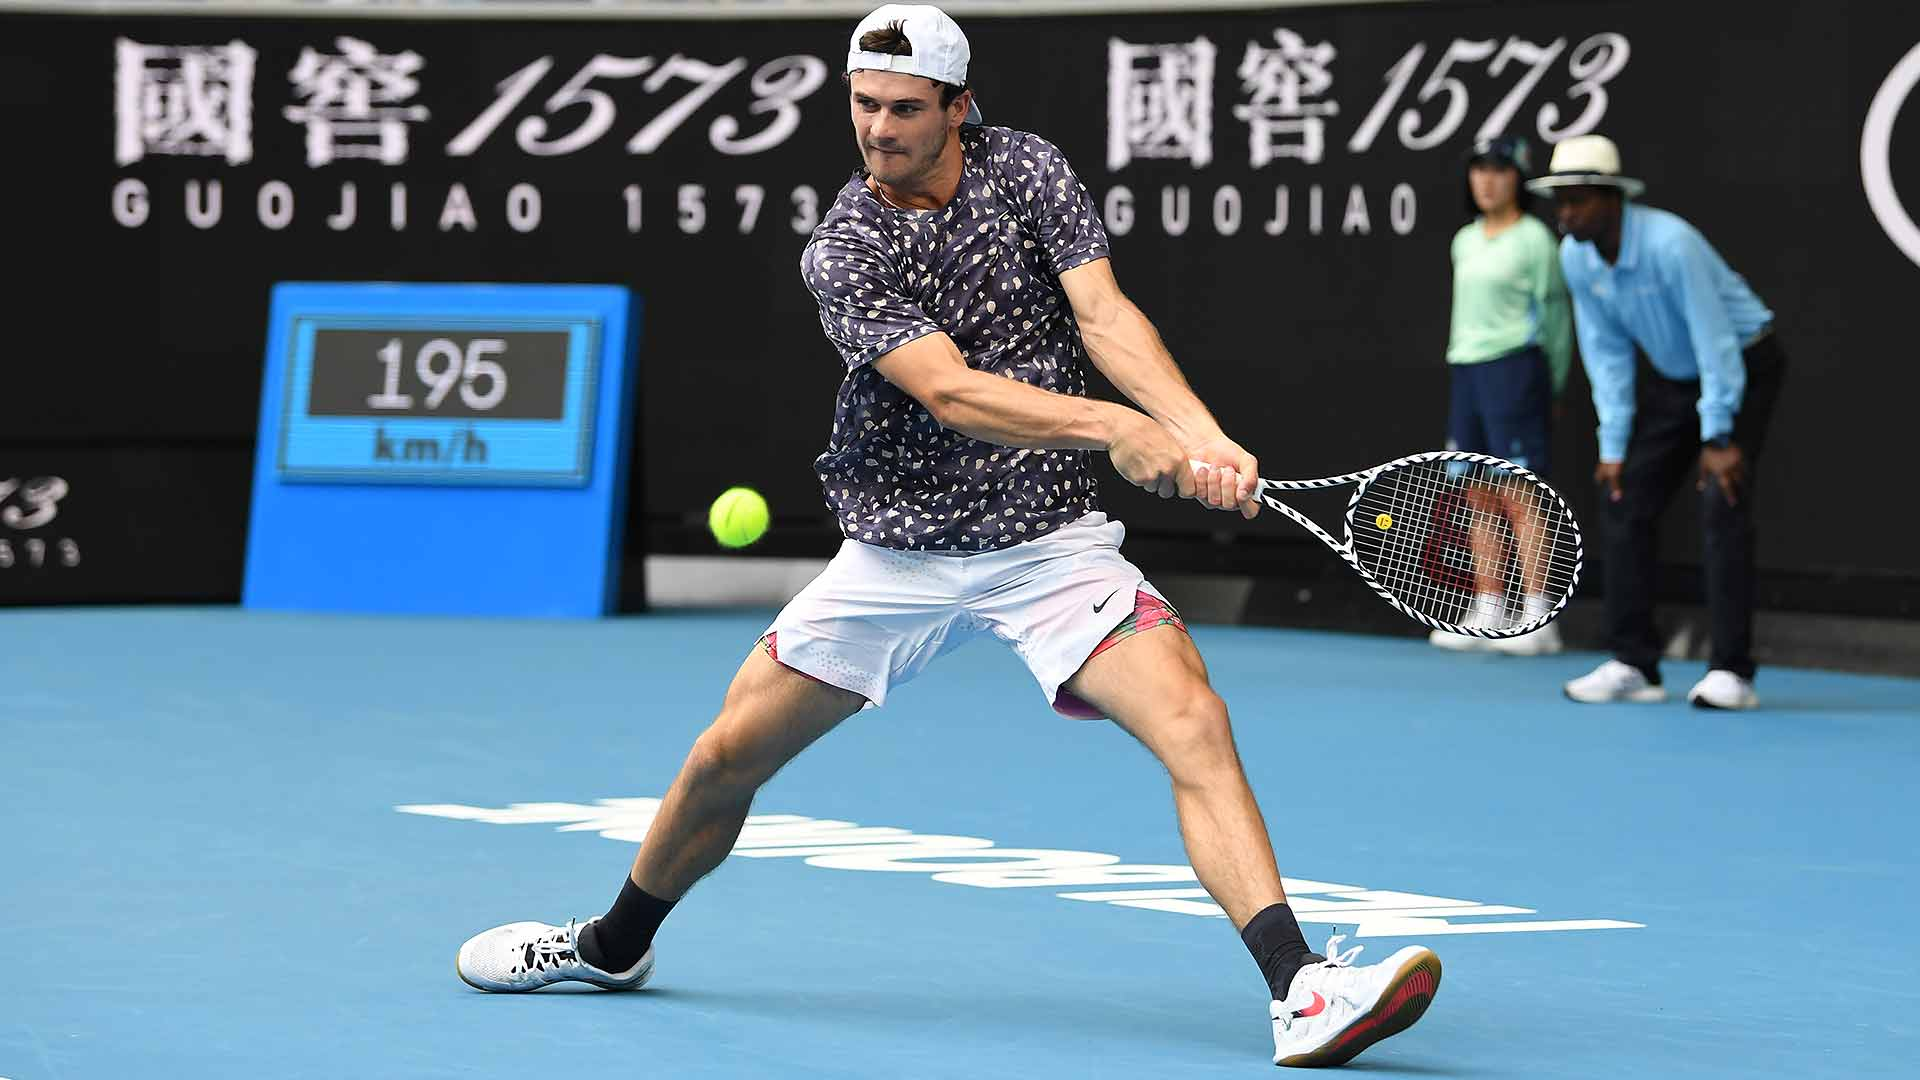 American Tommy Paul reaches the third round of a Grand Slam for the first time on Wednesday at the Australian Open.